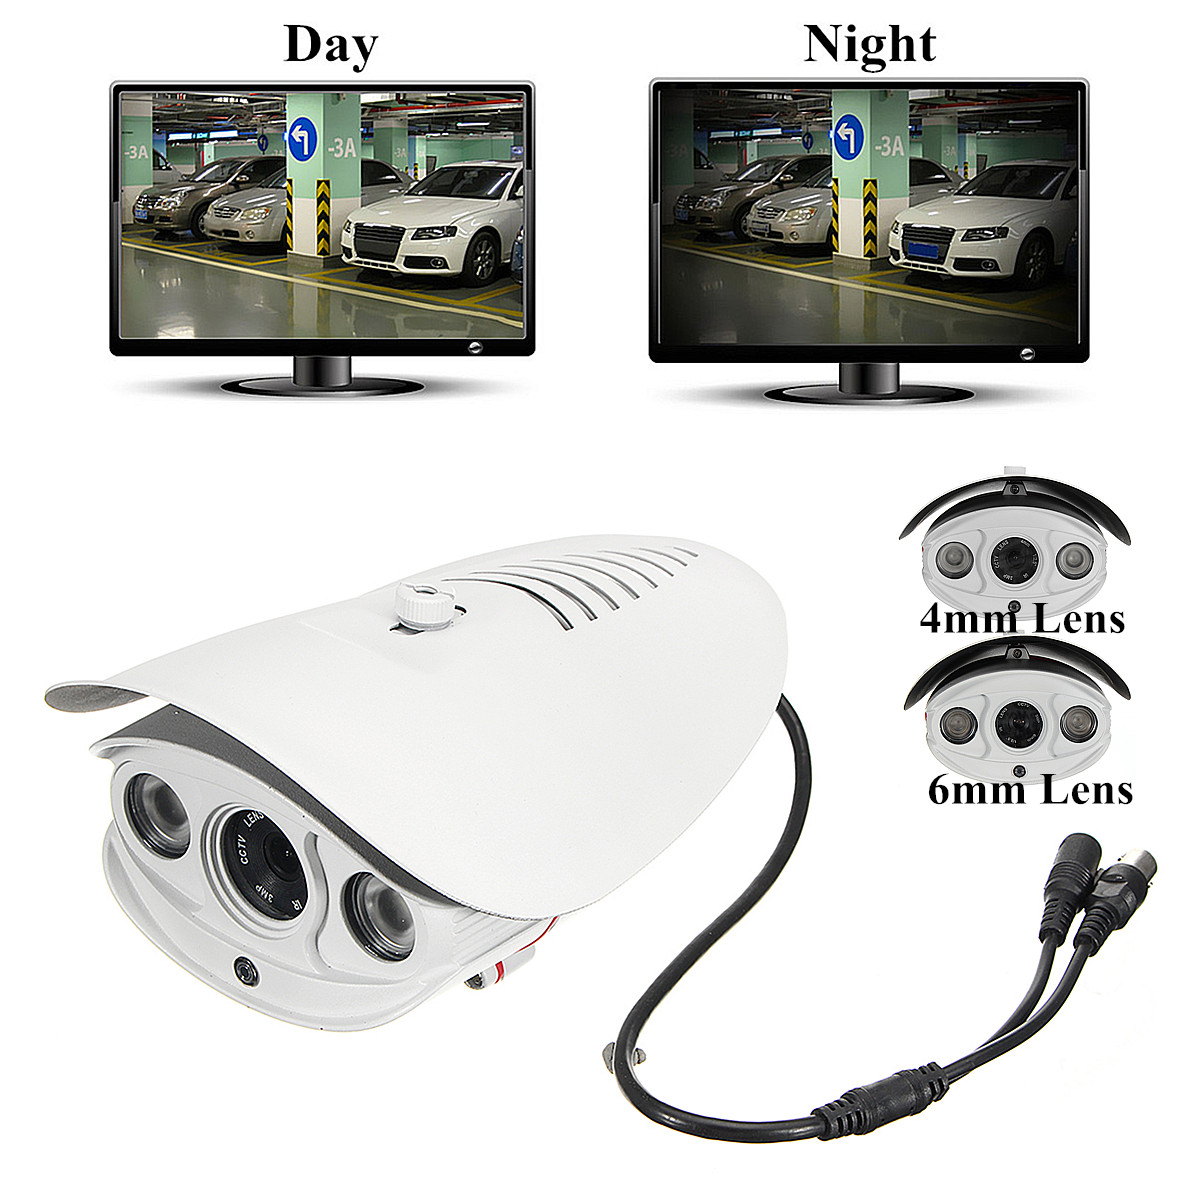 1080P PAL 12V IP Camera Home Security Monitor Night Vision Indoor Outdoor Waterproof Aluminum Alloy Camera 6/4mm Lens Big Sale